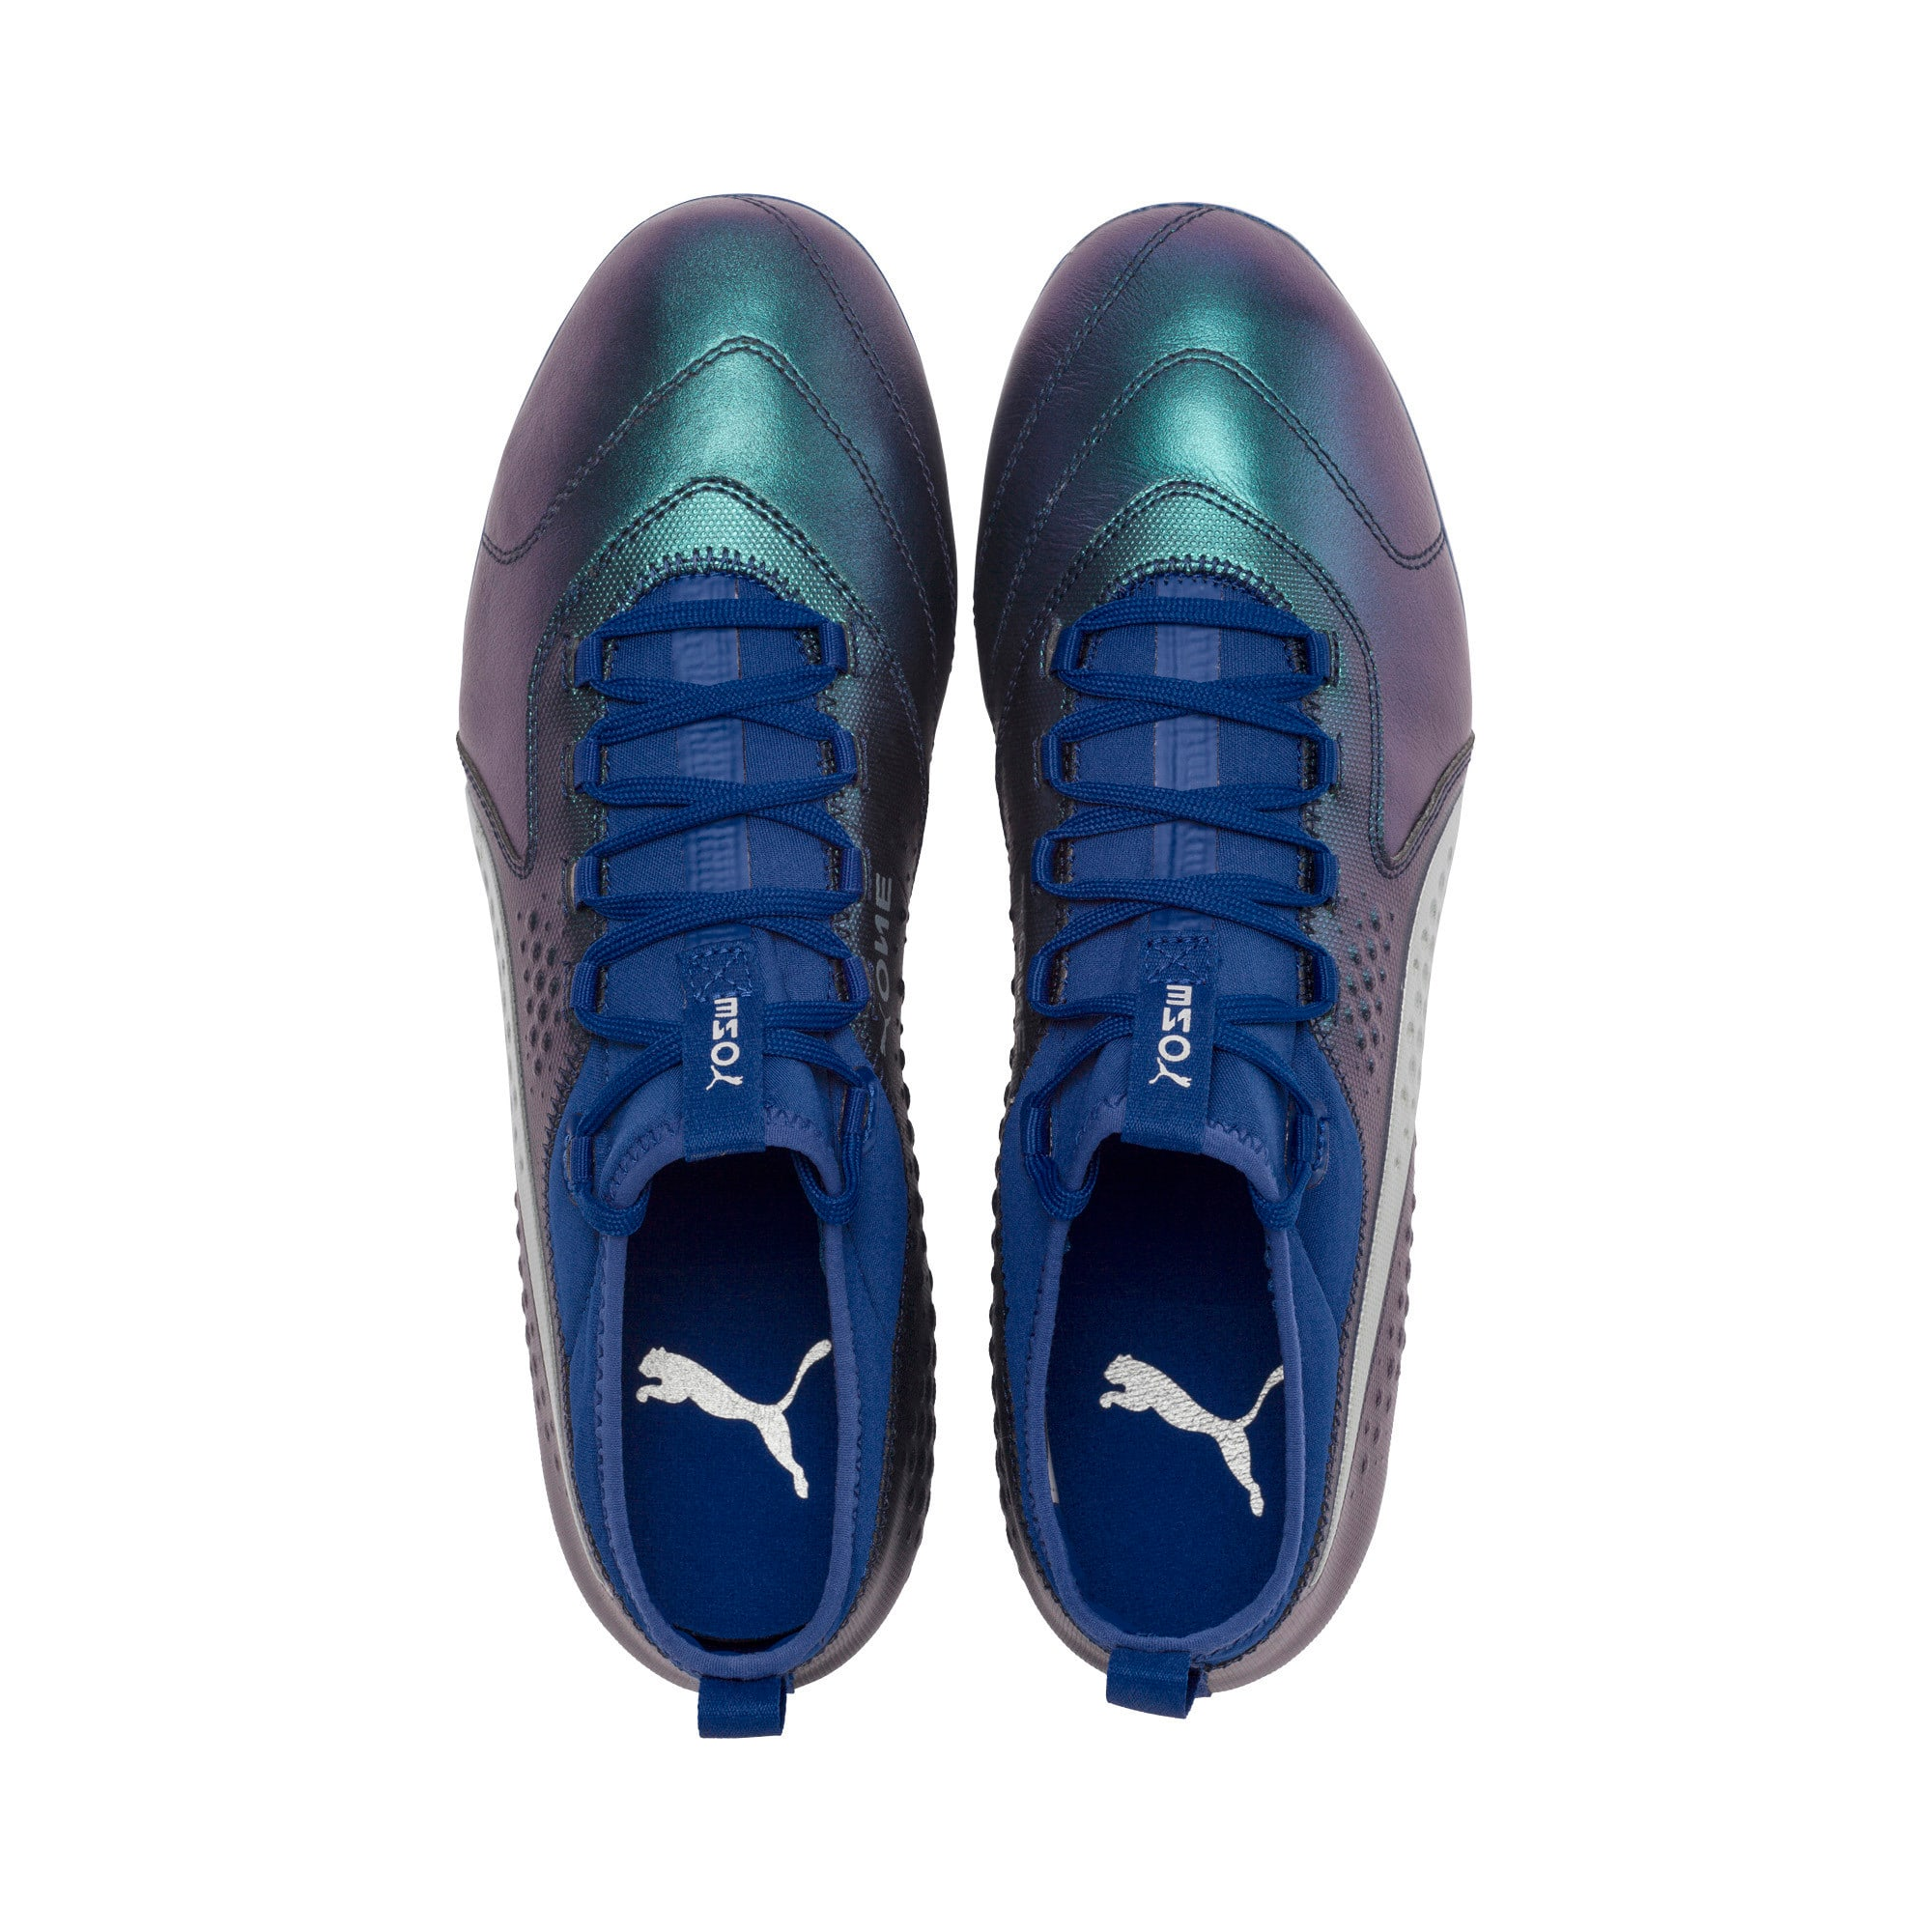 Thumbnail 6 of PUMA ONE 3 Leather FG Men's Football Boots, Sodalite Blue-Silver-Peacoat, medium-IND